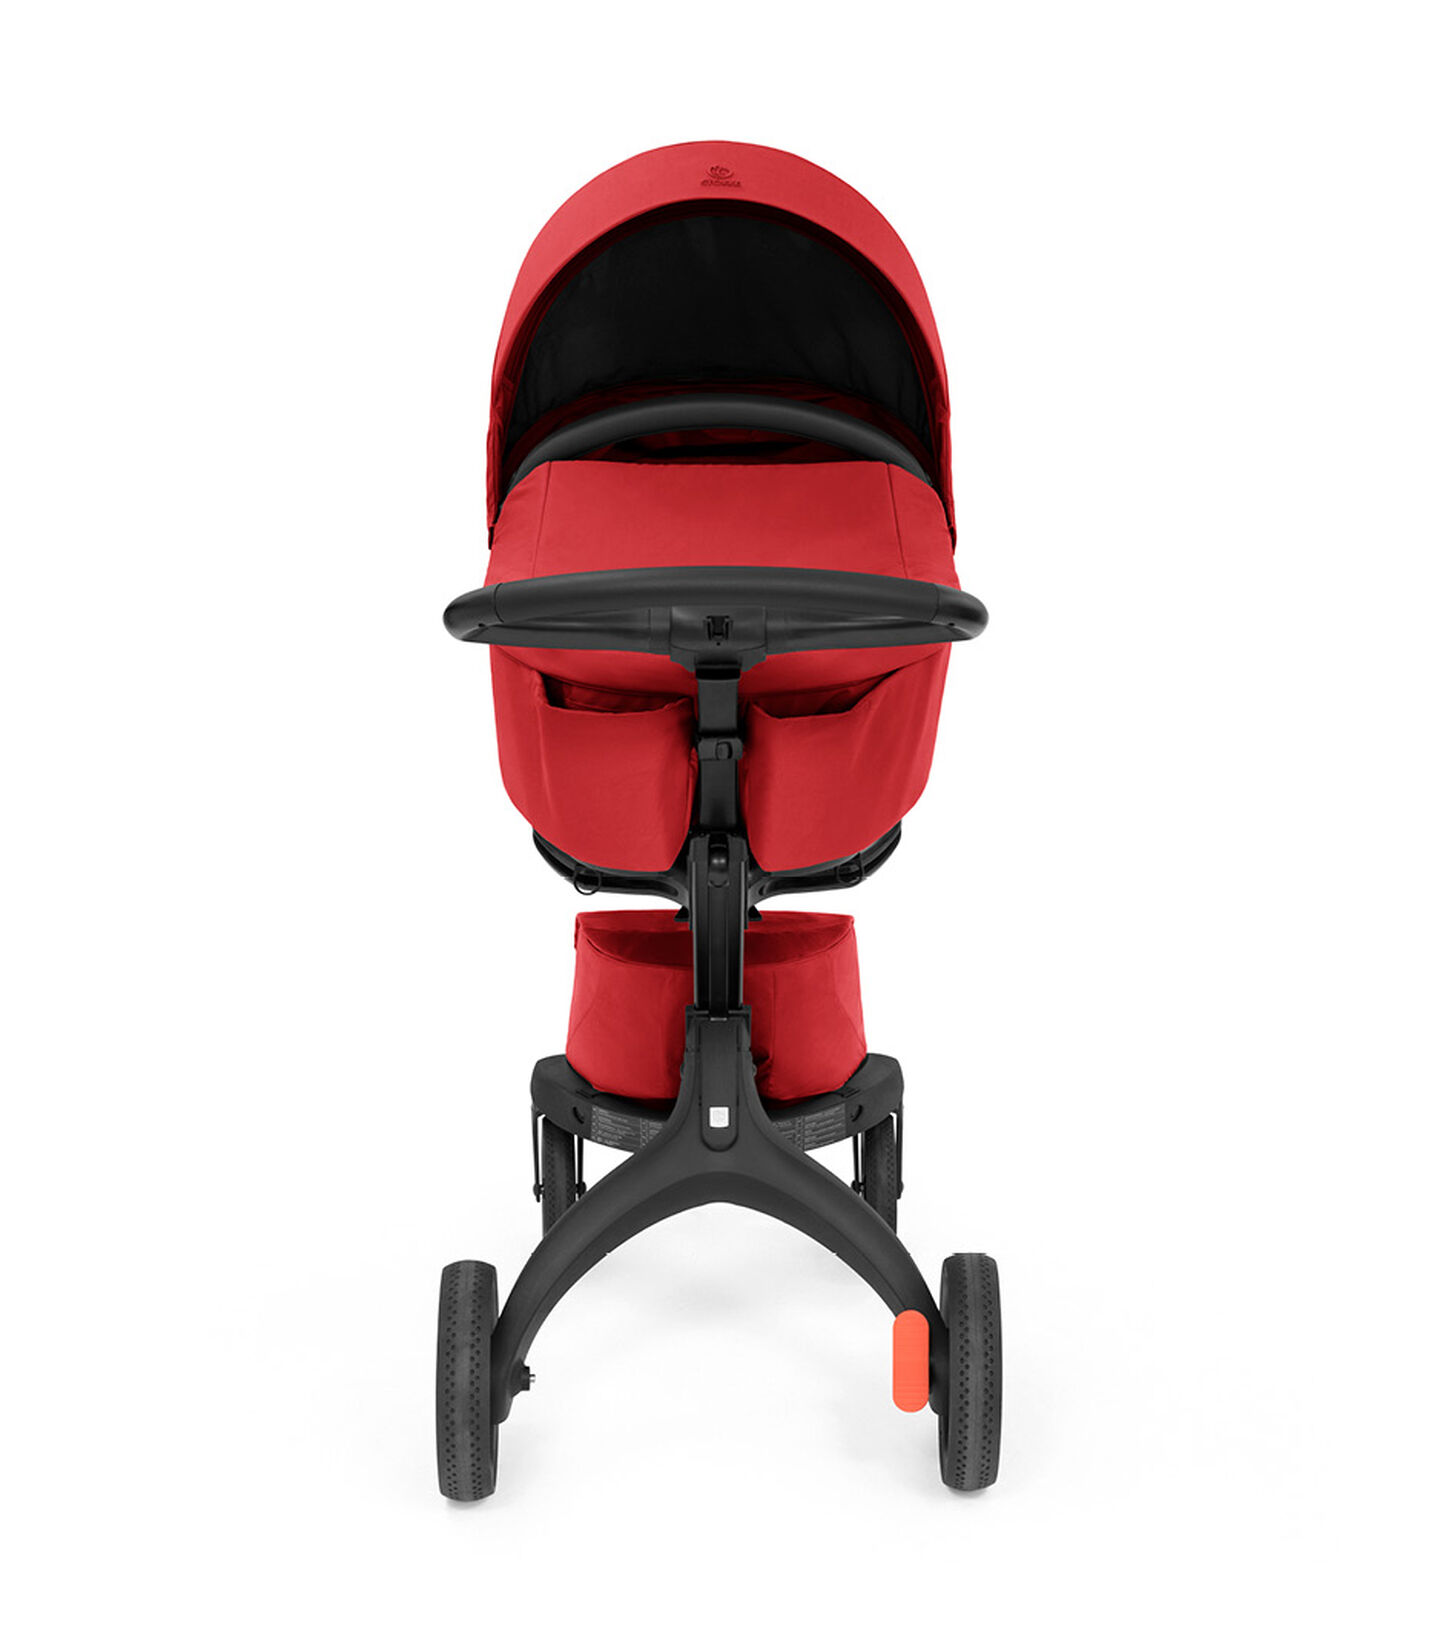 Stokke® Xplory® X Babyschale Ruby Red, Ruby Red, mainview view 3